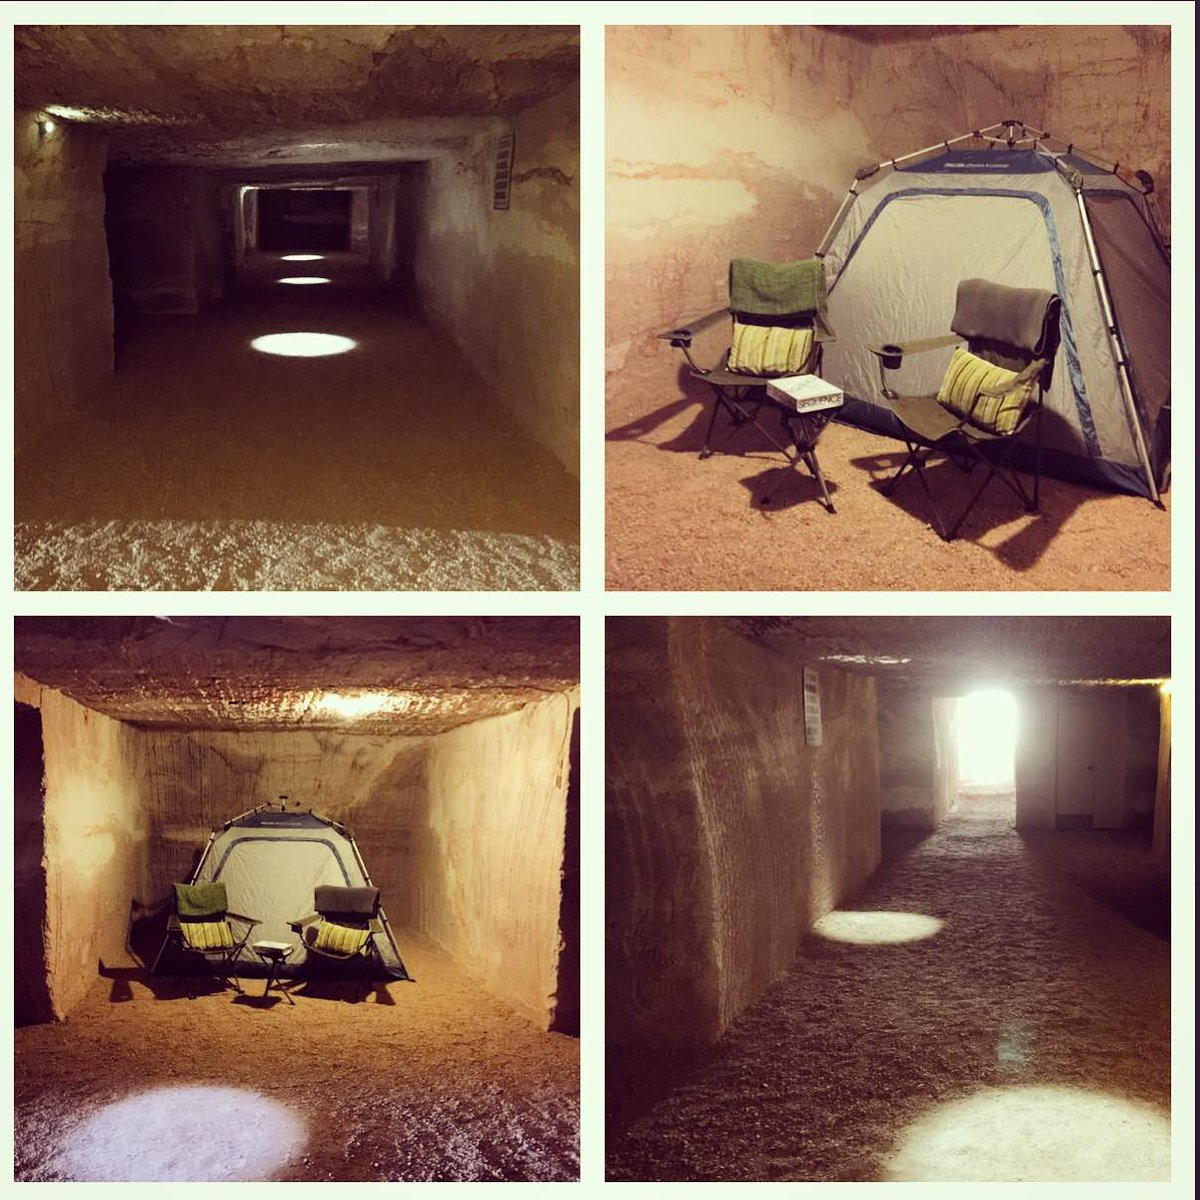 Go mining for opals in this #Aussie wonderland adventure of #UndergroundCamping at #CooberPedy http://t.co/wrZ3bpiCt5 http://t.co/1YYEobmswQ